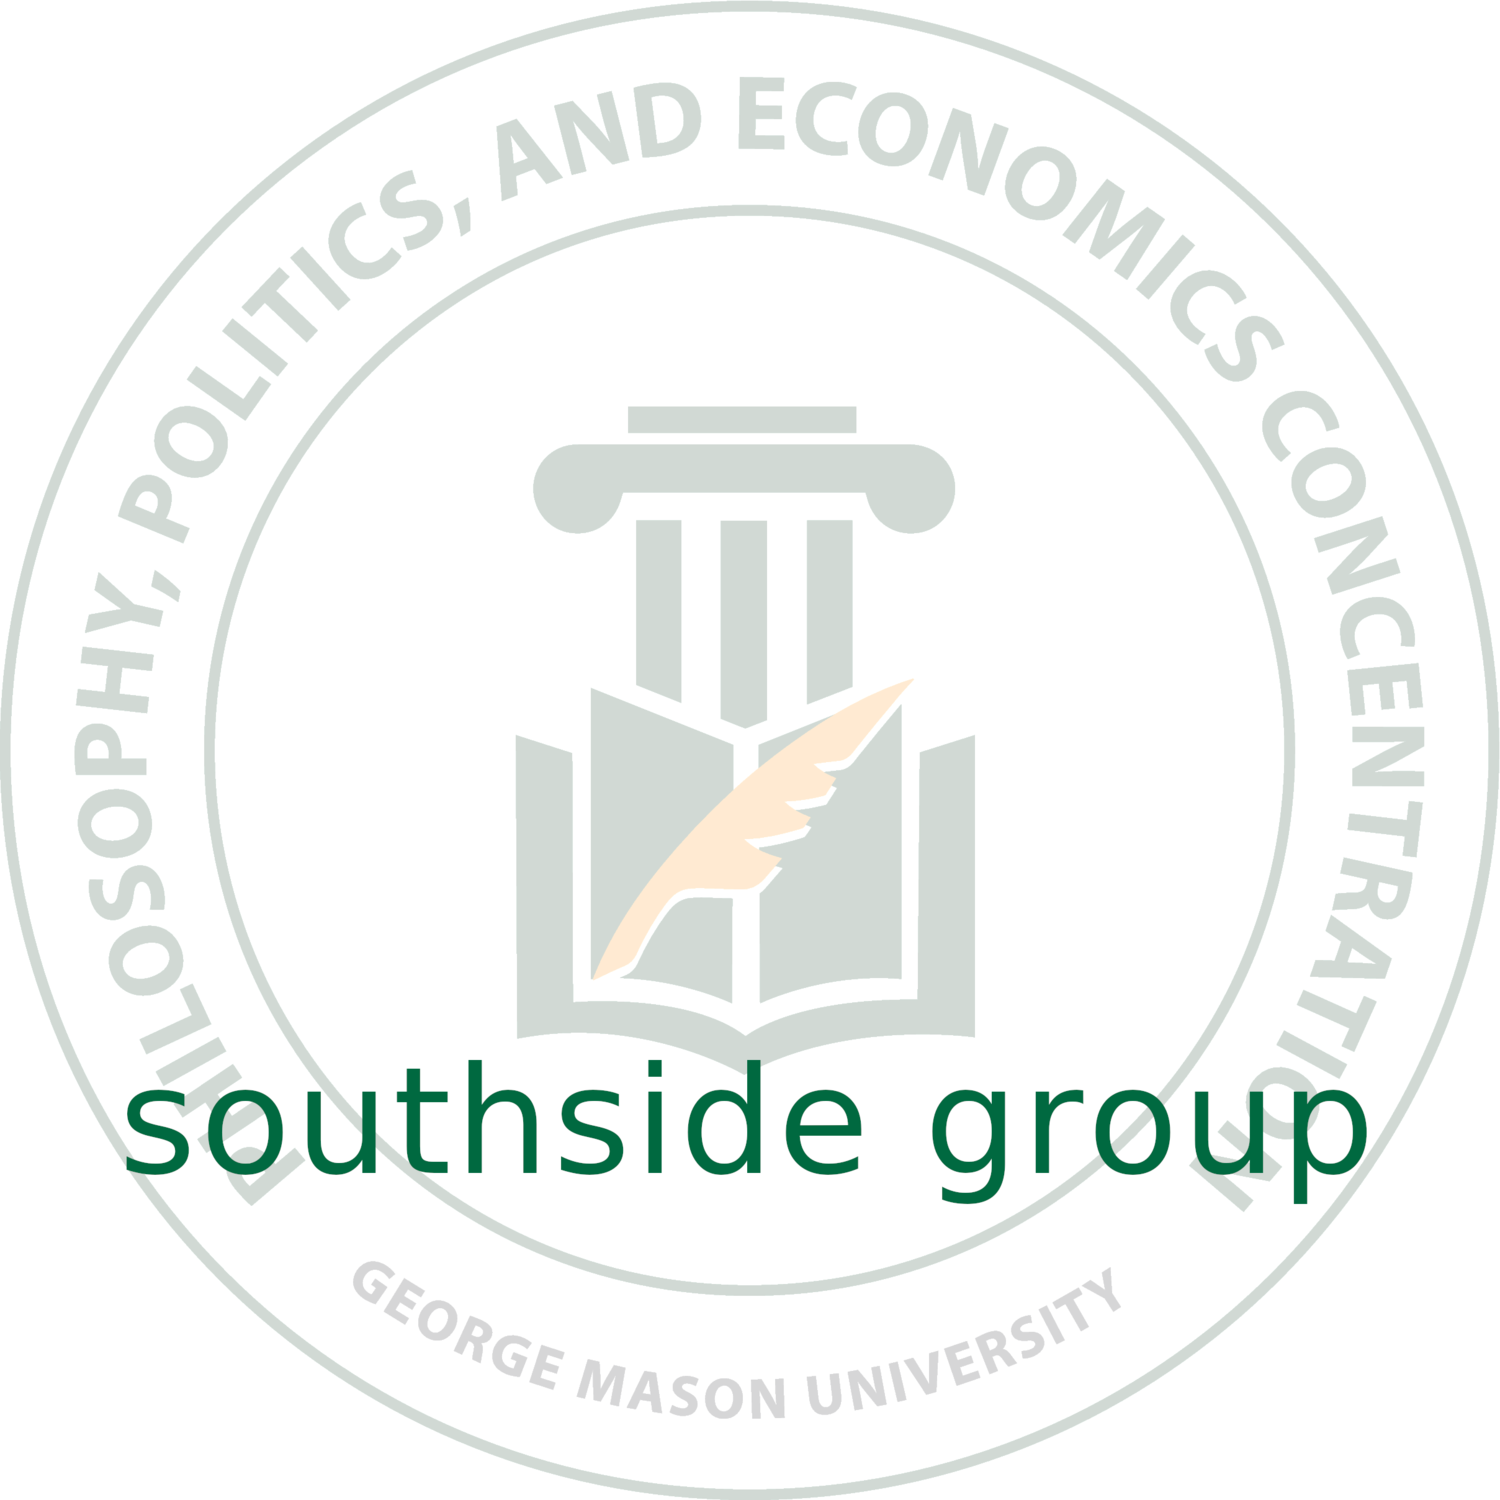 southside group -- March 21 -- 3. Gentrification: The Brooklyn Brownstone